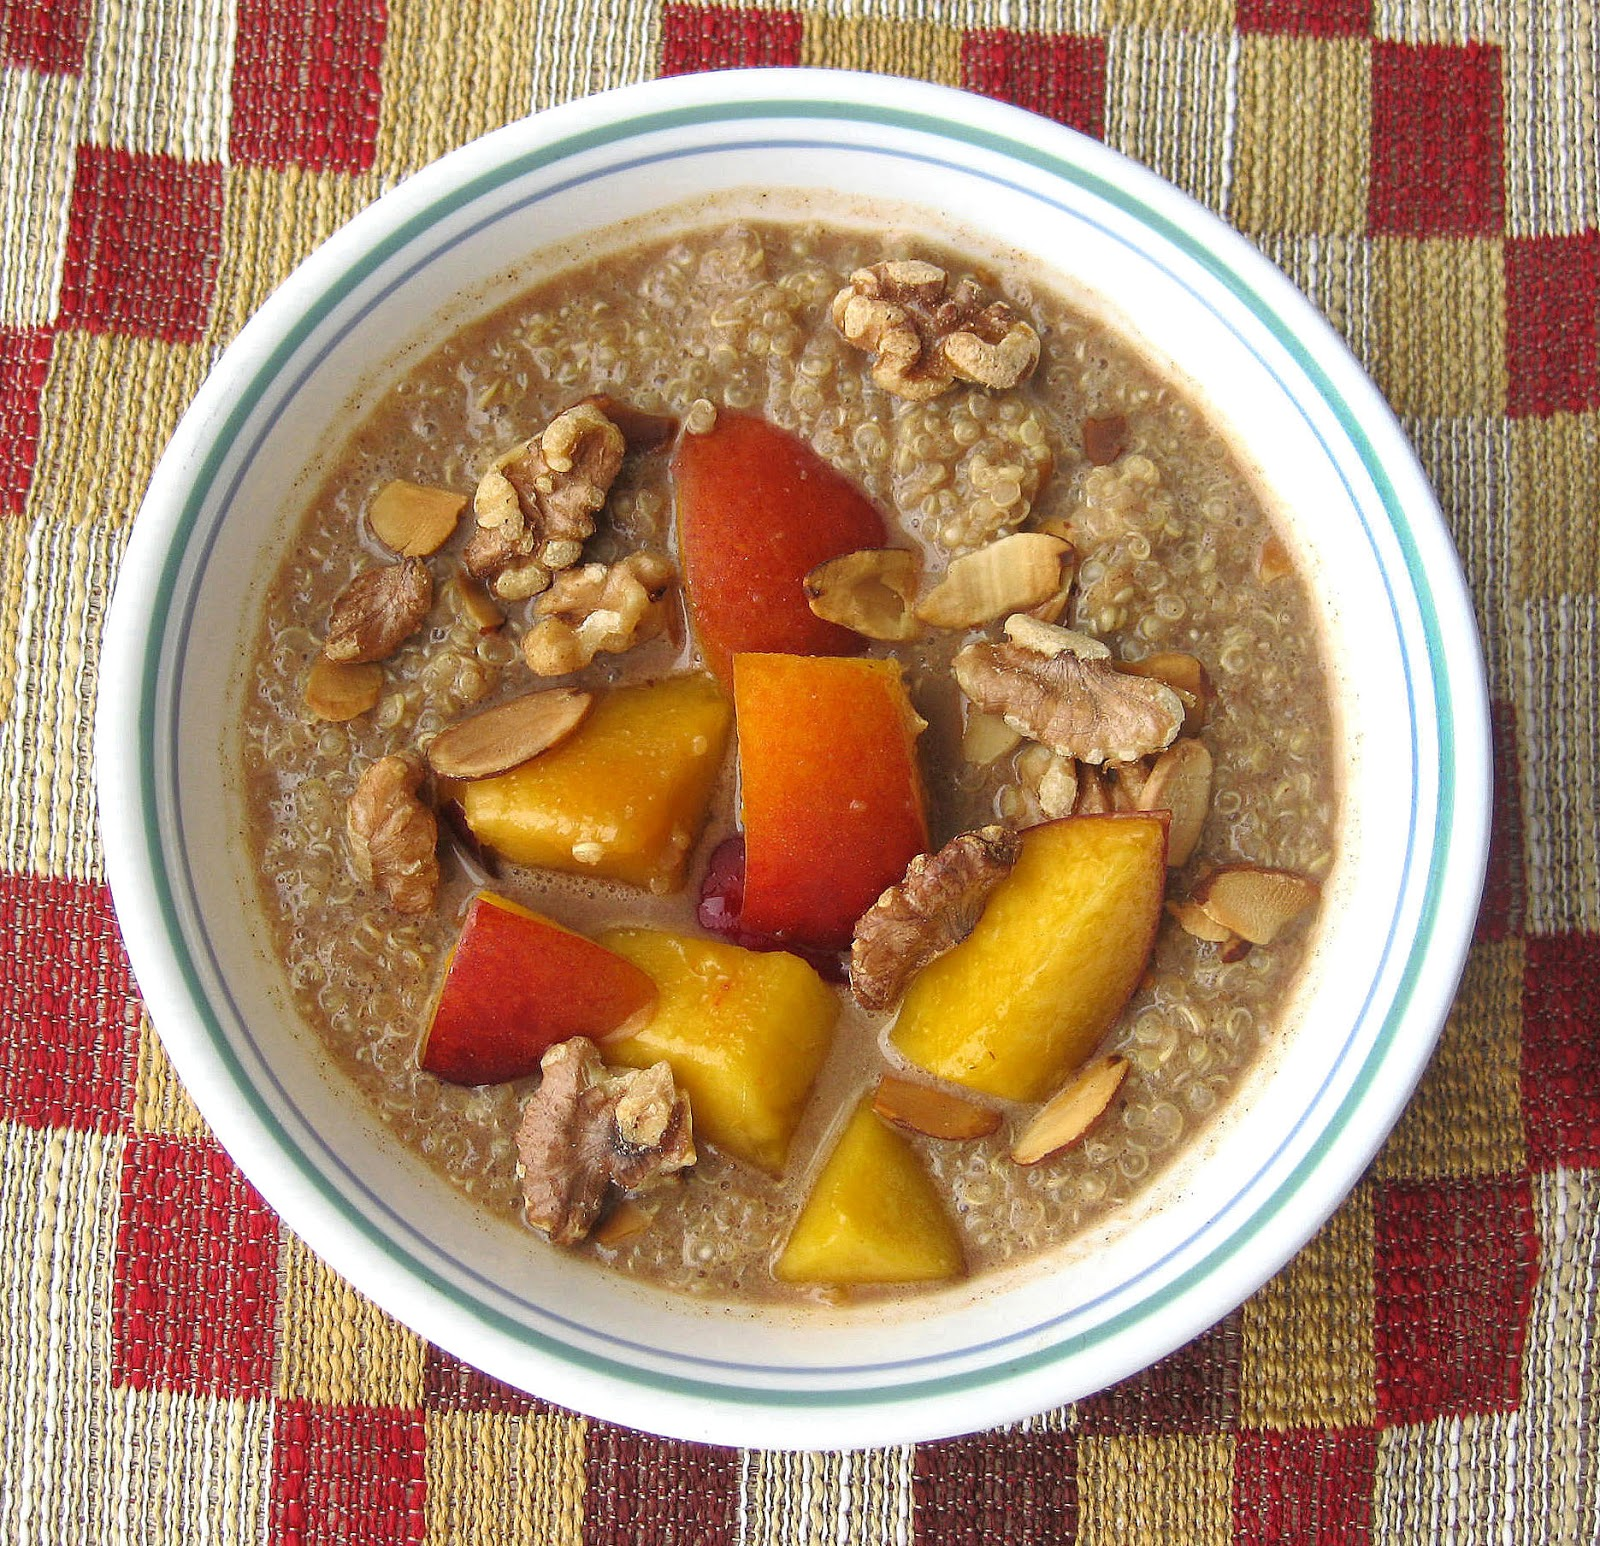 ... : Recipe #365: Hot Quinoa Cereal with Nuts, Cinnamon, & Nectarines